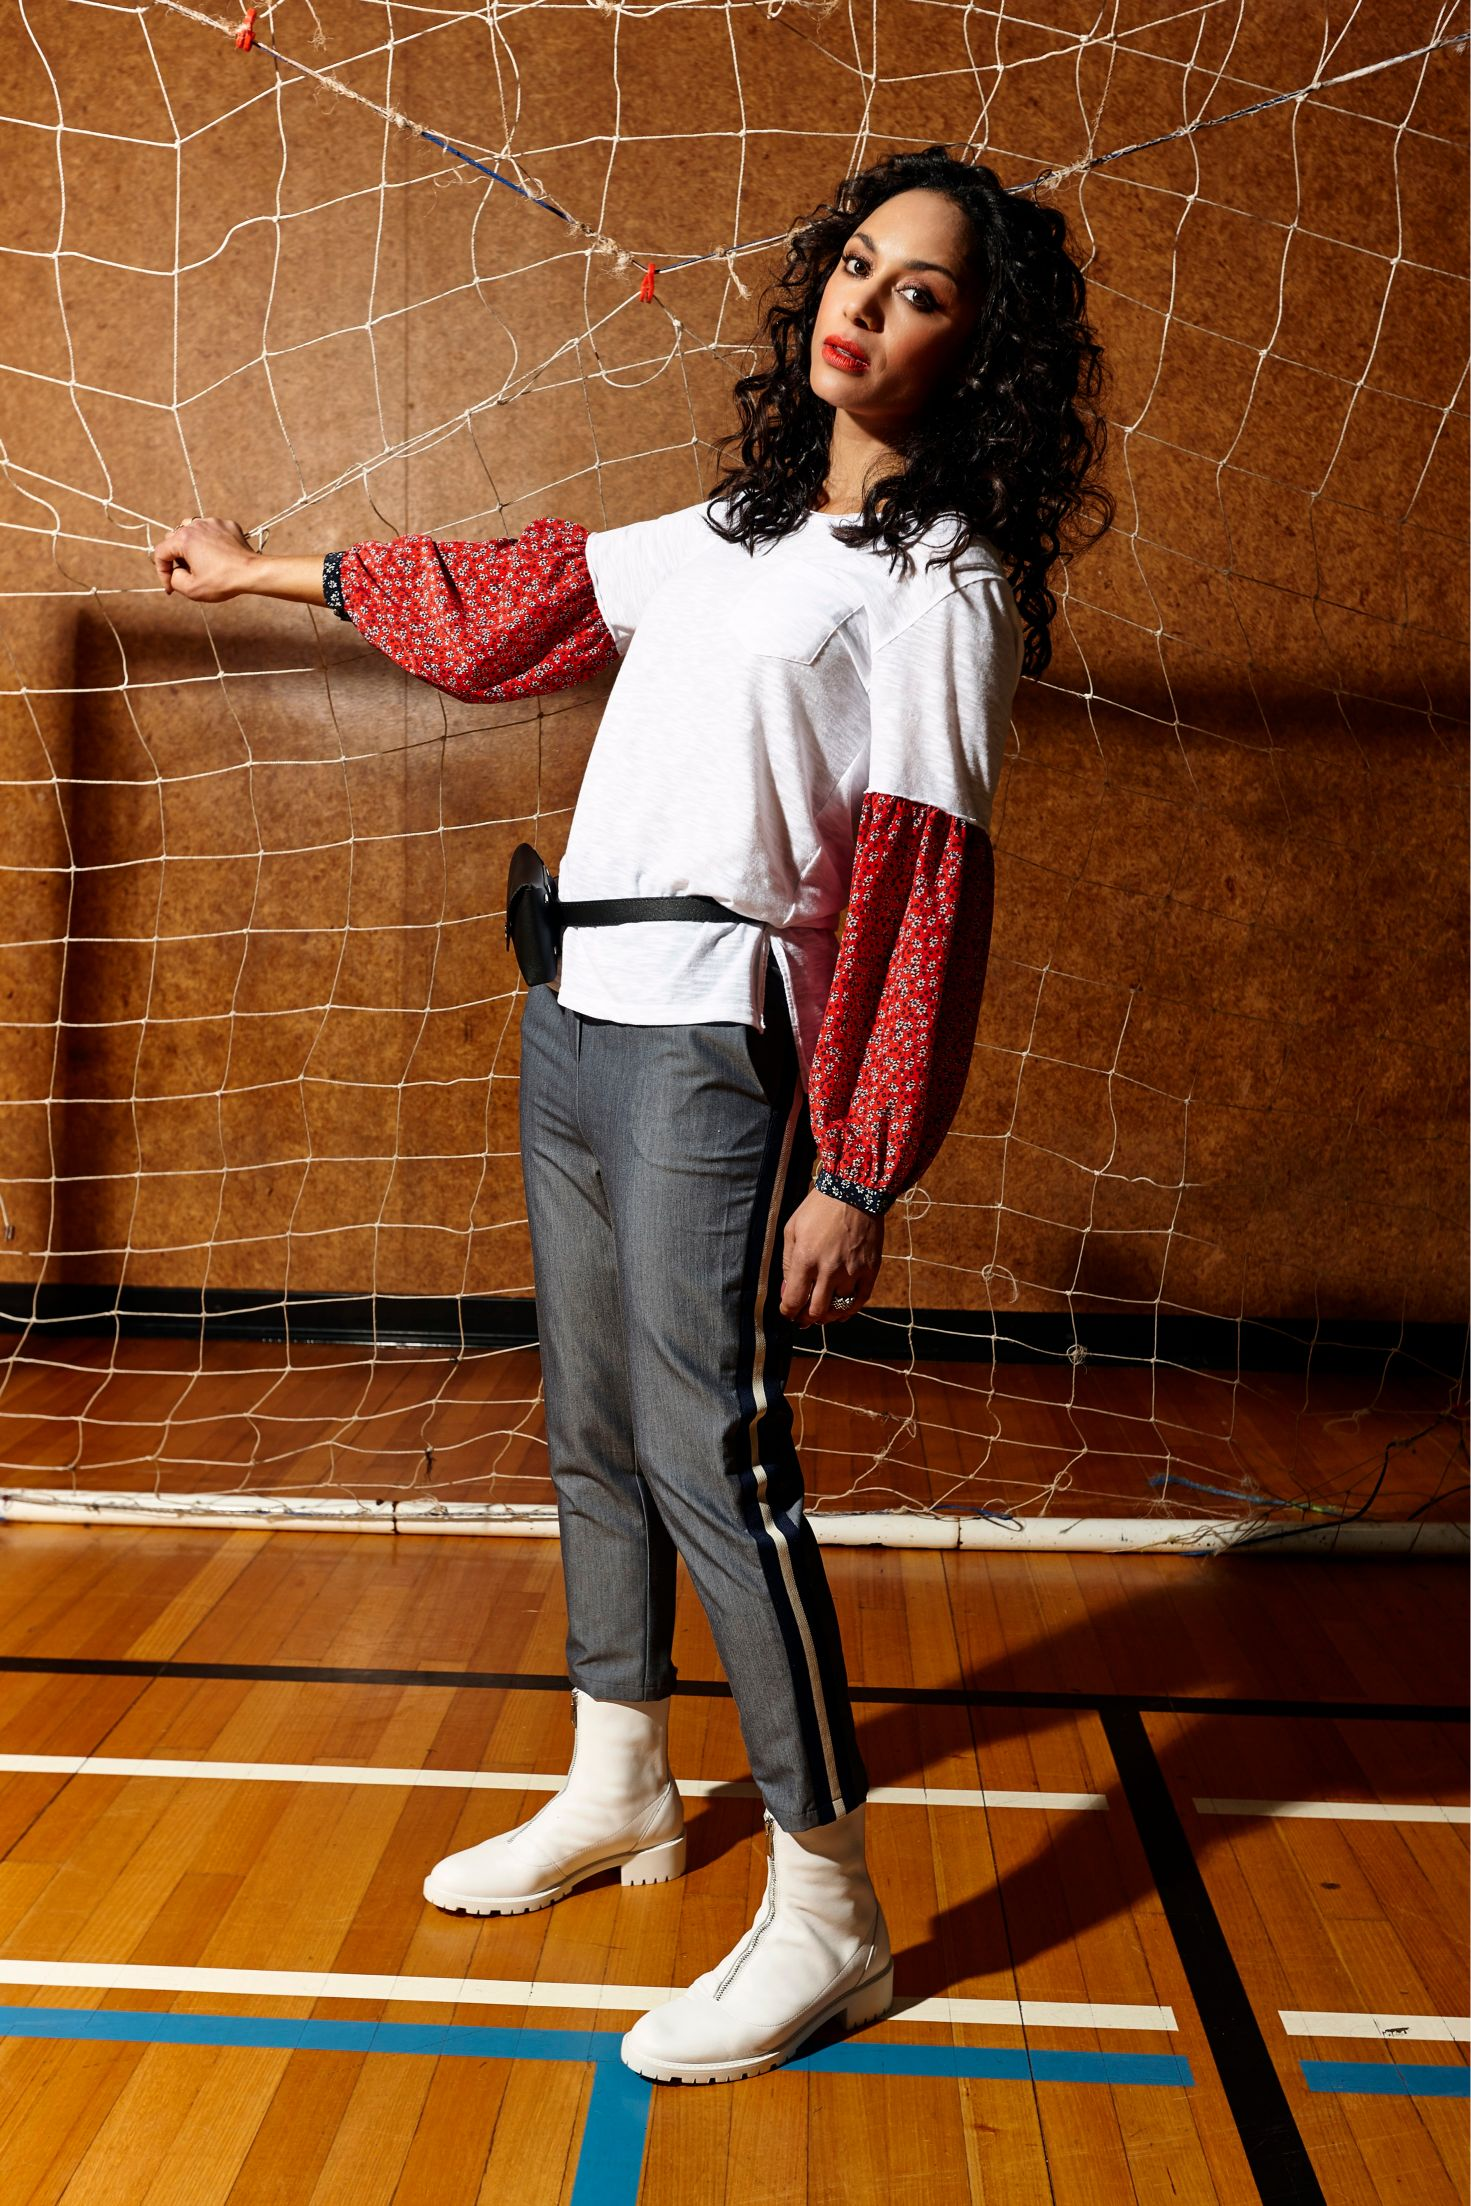 LEO+BE Autumn 20 campaign featuring Sonia Gray_Defence Top, RRP$145.00 & Break Pant, RRP$135.00